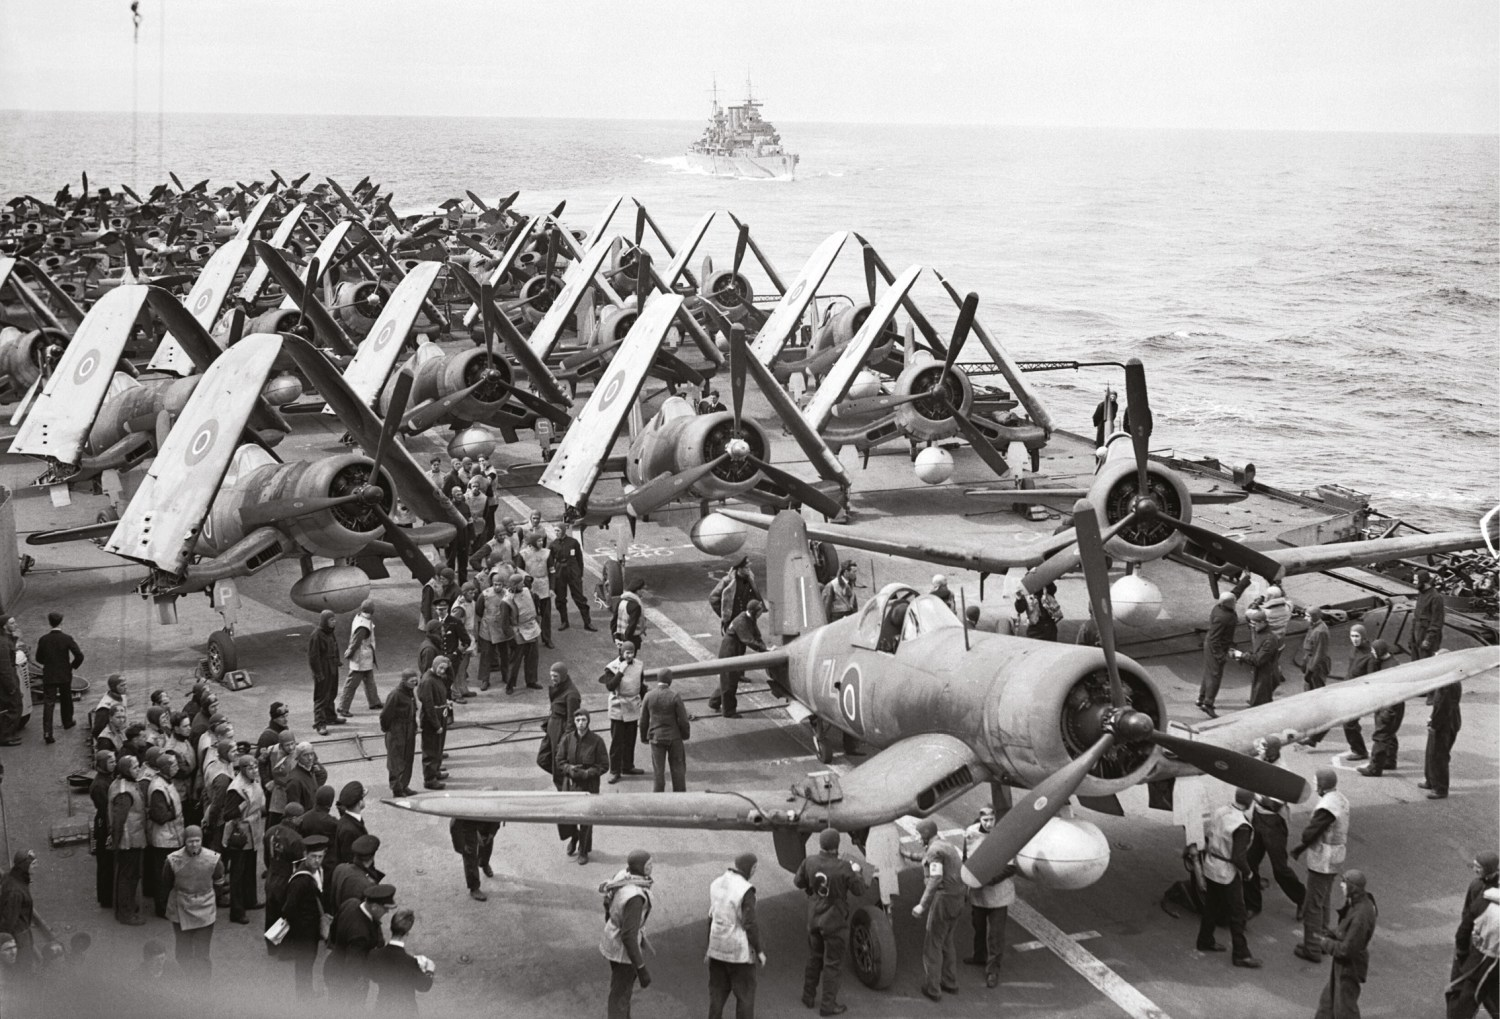 ABOVE Fleet Air Arm Corsairs and Barracudas on deck during Operation Mascot.